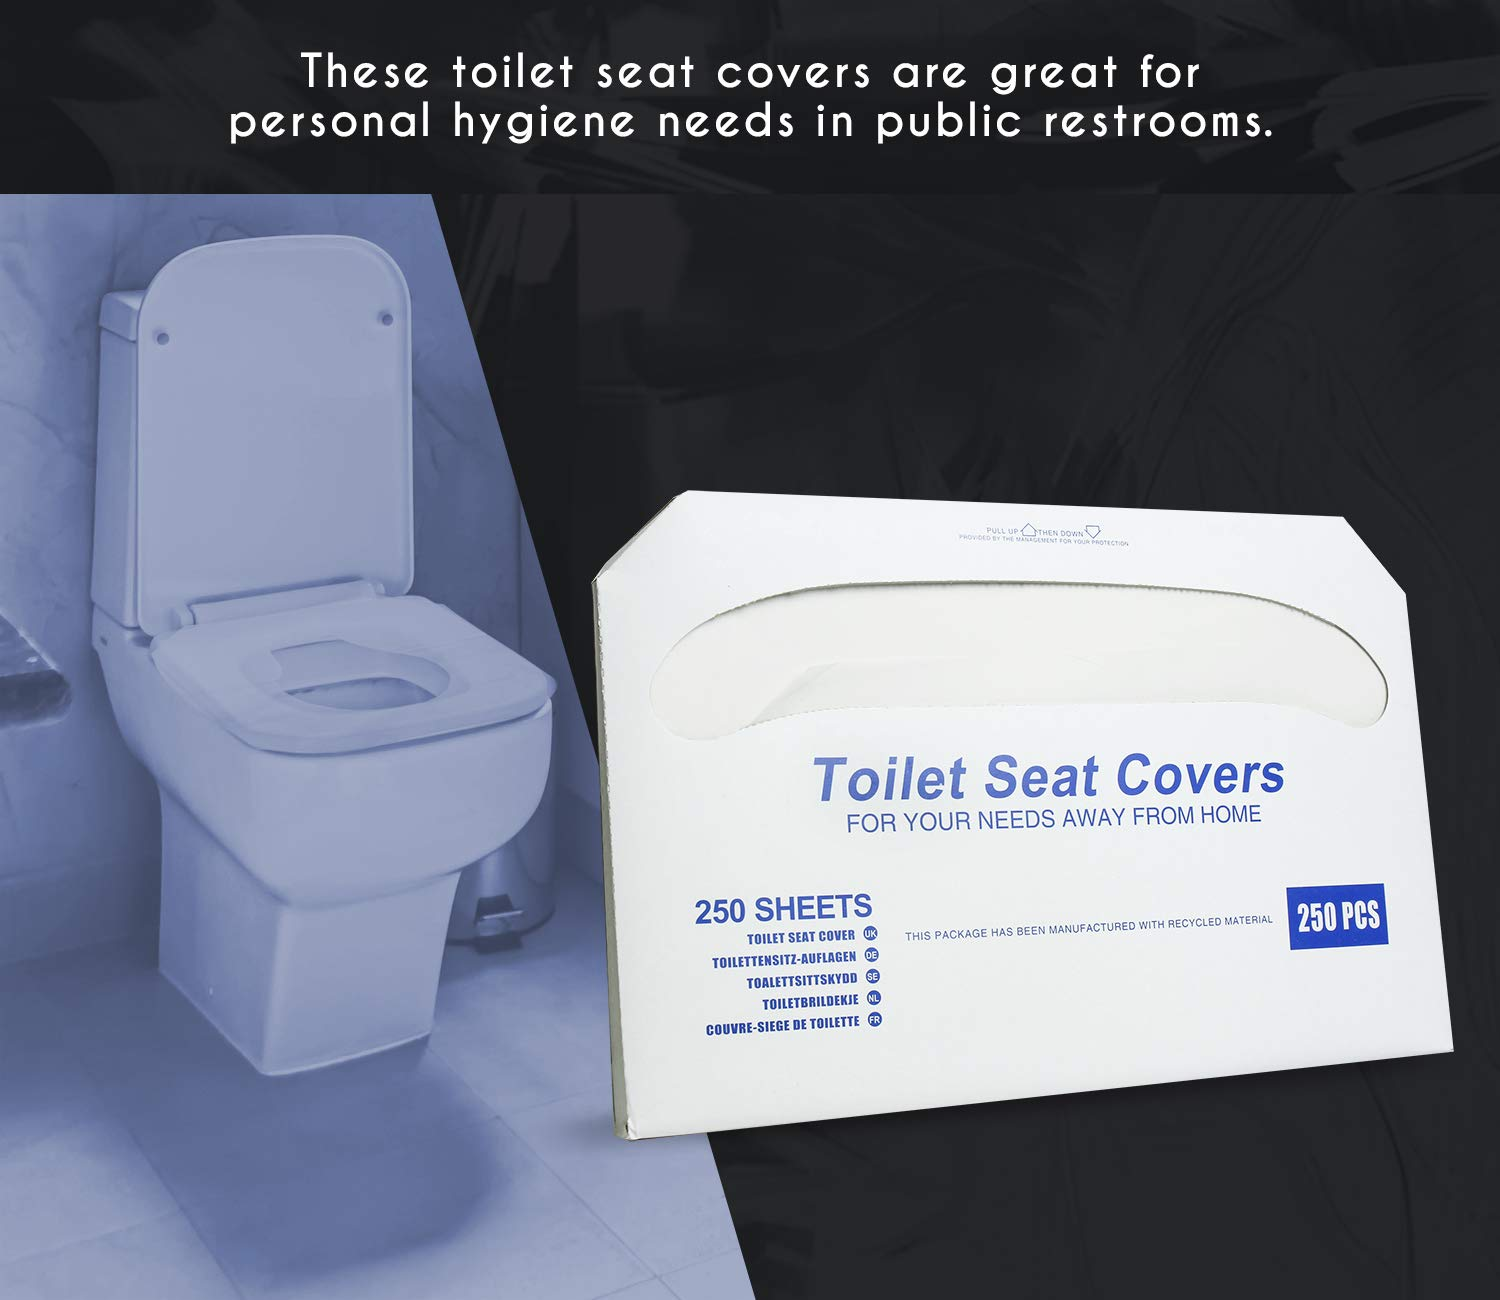 Groovy Paper Toilet Seat Covers Disposable Half Fold Toilet Seat Cover Dispensers White 4 Pack Of 250 14L X0 1W X 16H Caraccident5 Cool Chair Designs And Ideas Caraccident5Info